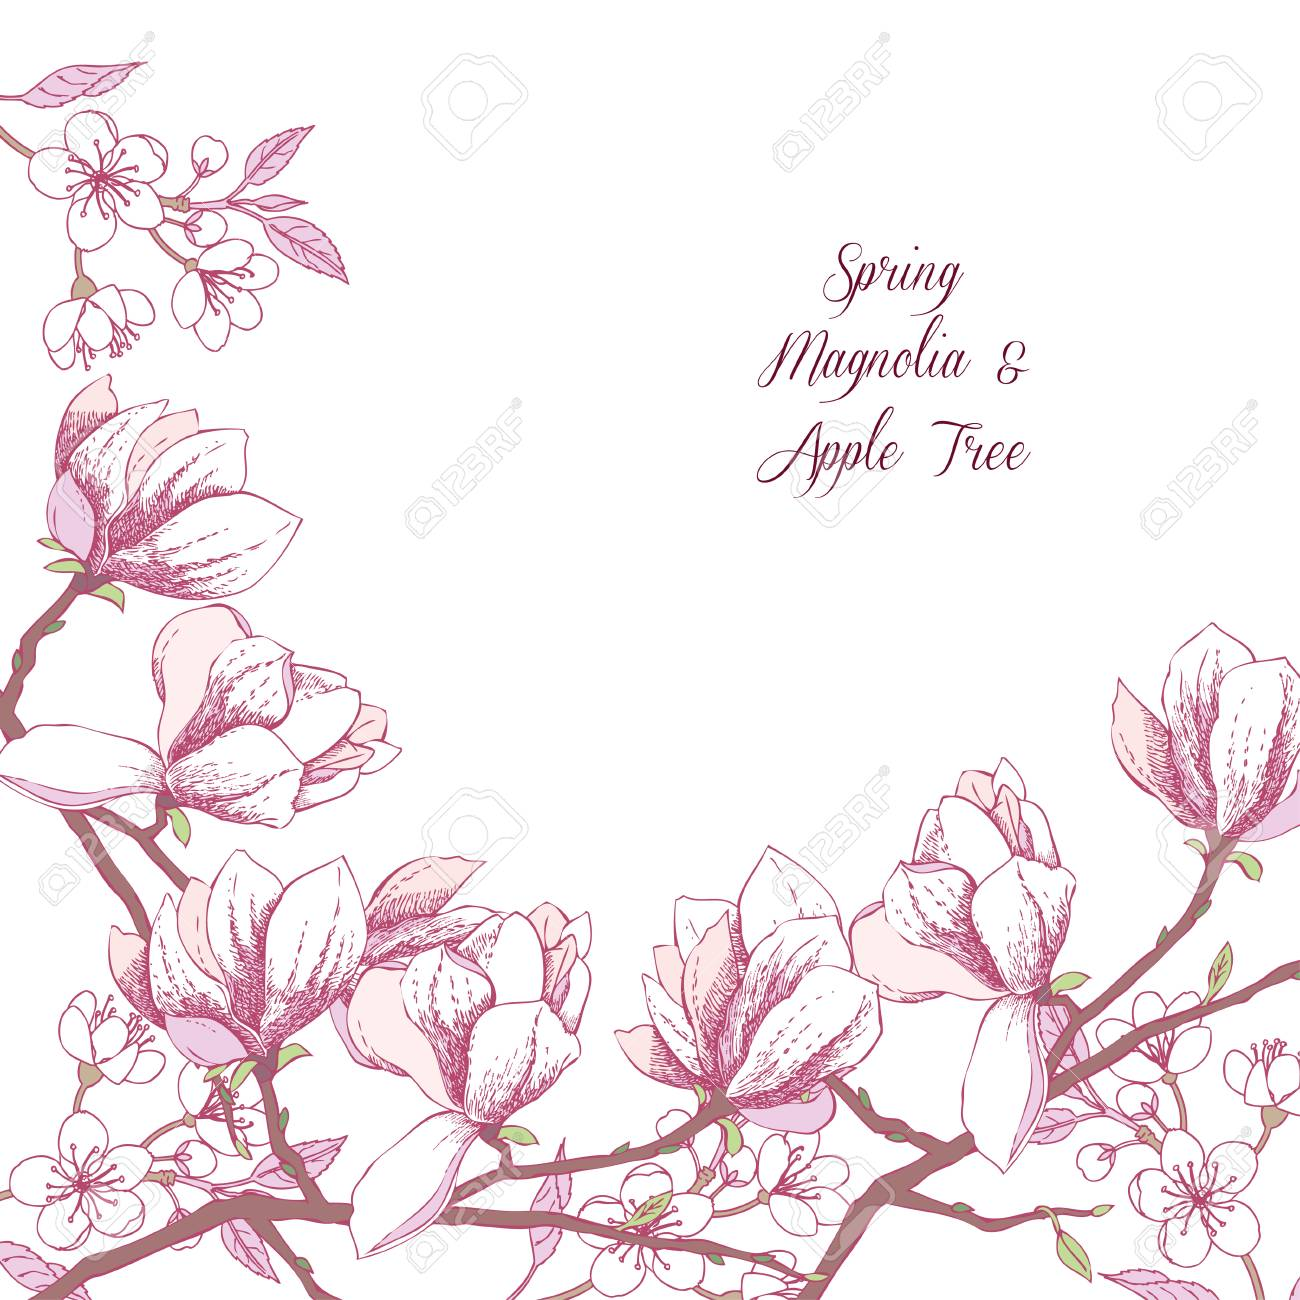 Background With Magnolia And Apple Tree Hand Drawn Spring Flowers